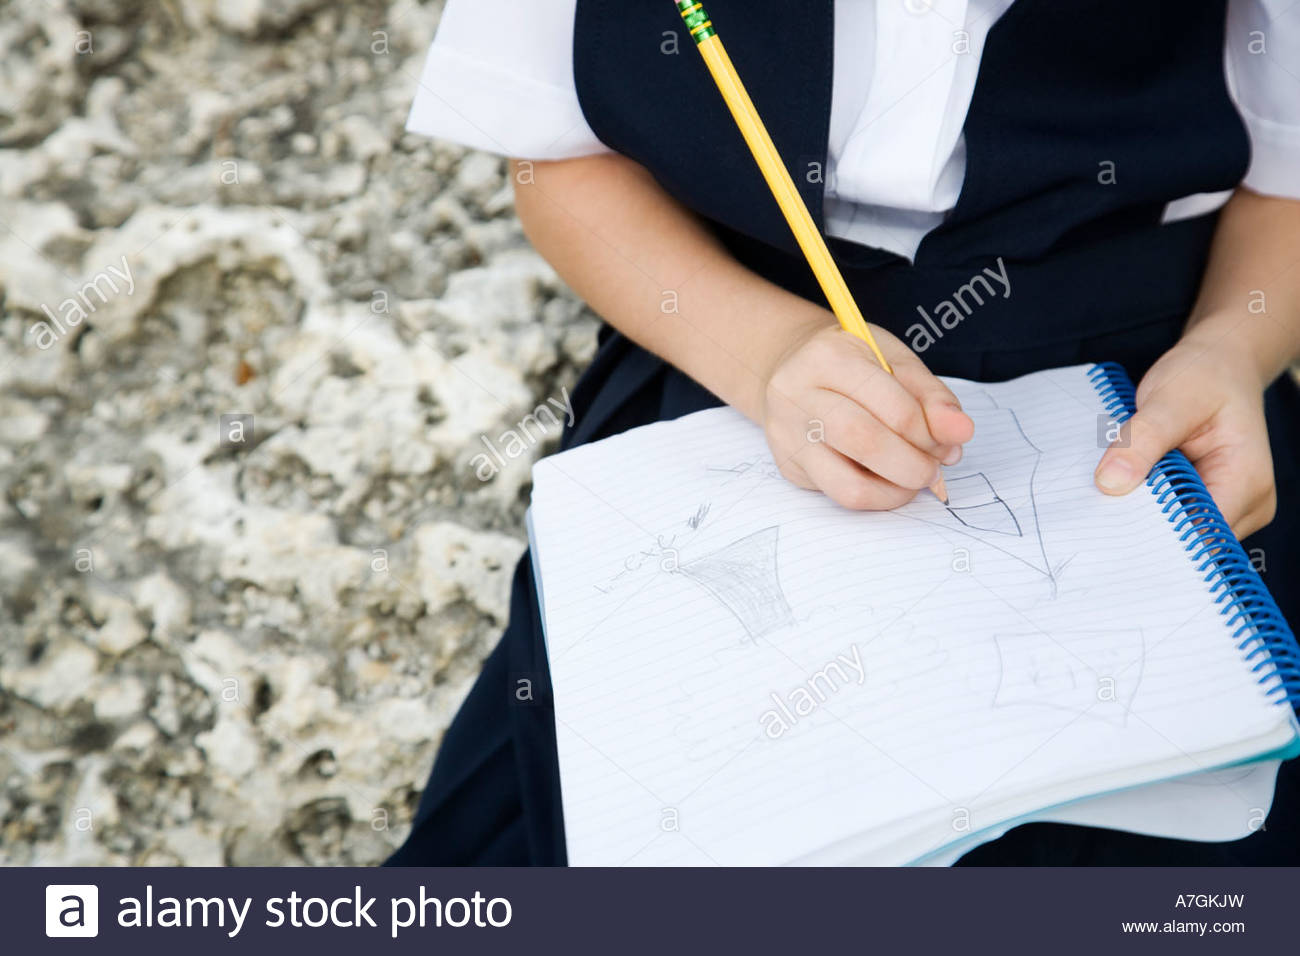 A schoolgirl writing in a notebook - Stock Image